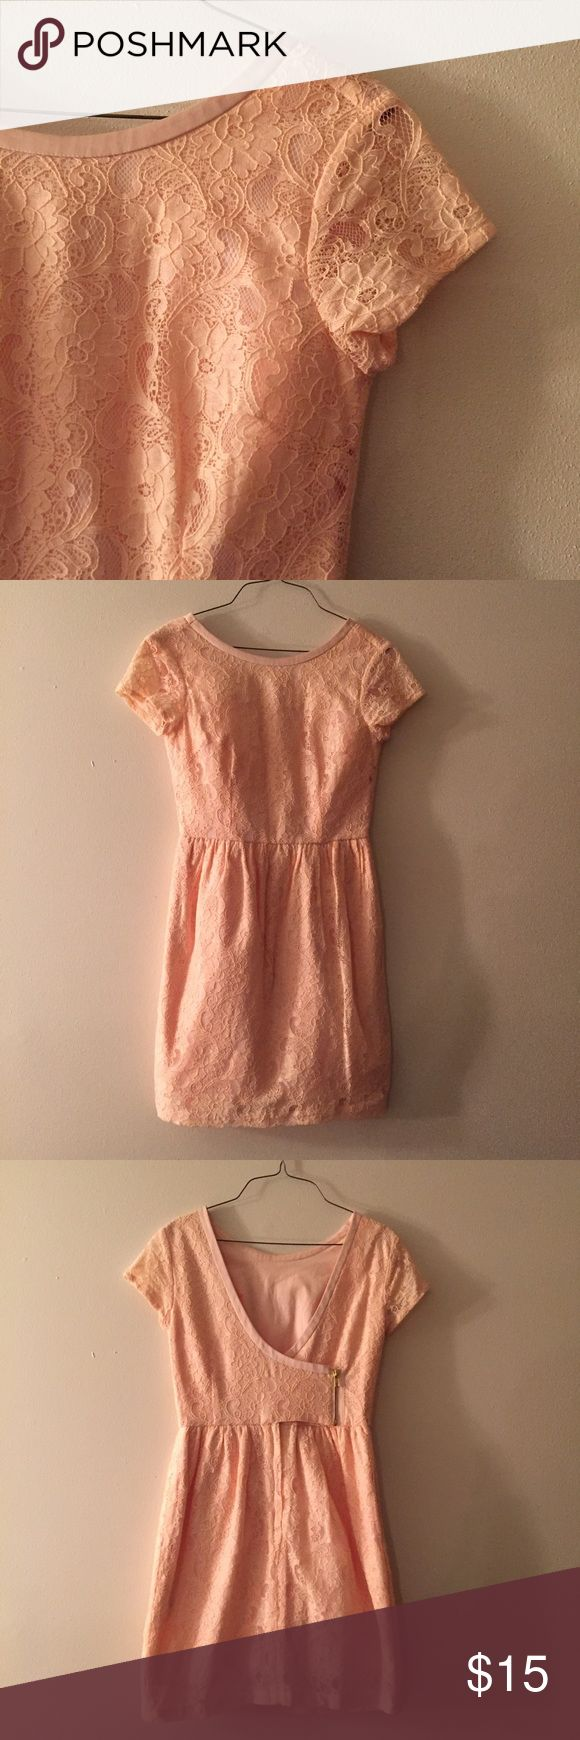 H&m pink a line lace dress with open back Cute and classy pink lace a line dress with deep open back from the Conscious collection at H&m. Like new, only worn once for Easter last year. In excellent condition. Perfect for any upcoming spring and summer event. Beautiful dress, it just doesn't fit me anymore H&M Dresses